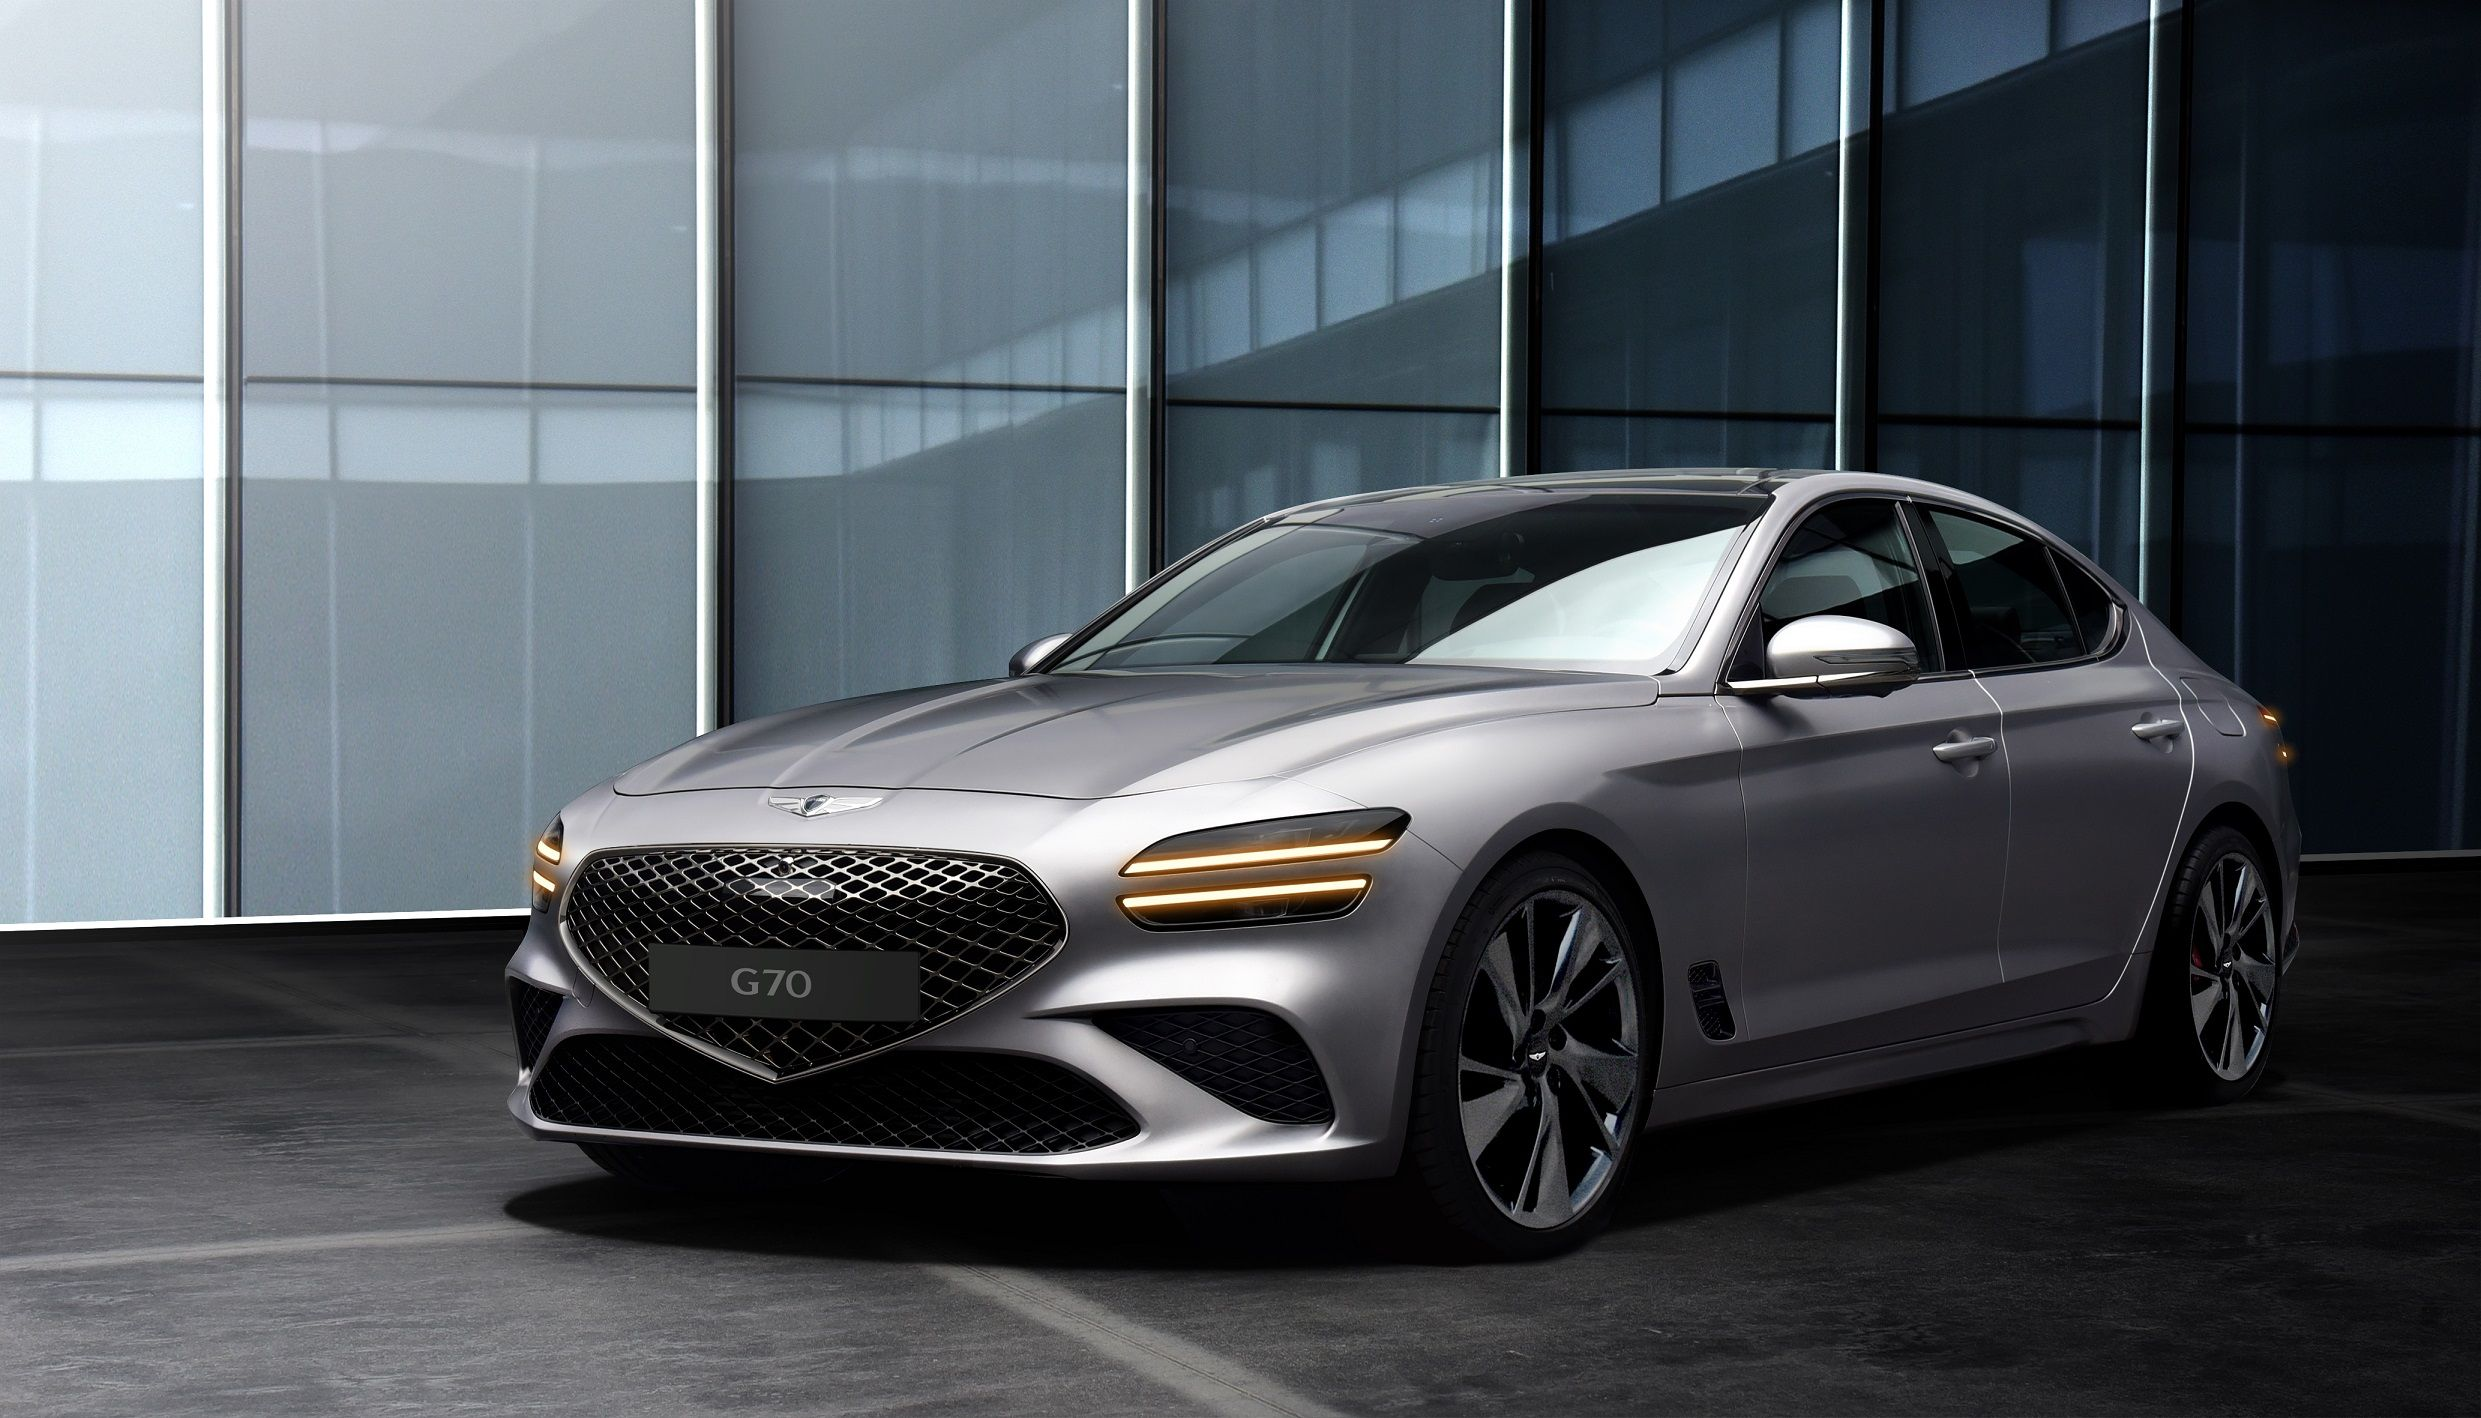 2022 Genesis G70 Review, Pricing, and Specs